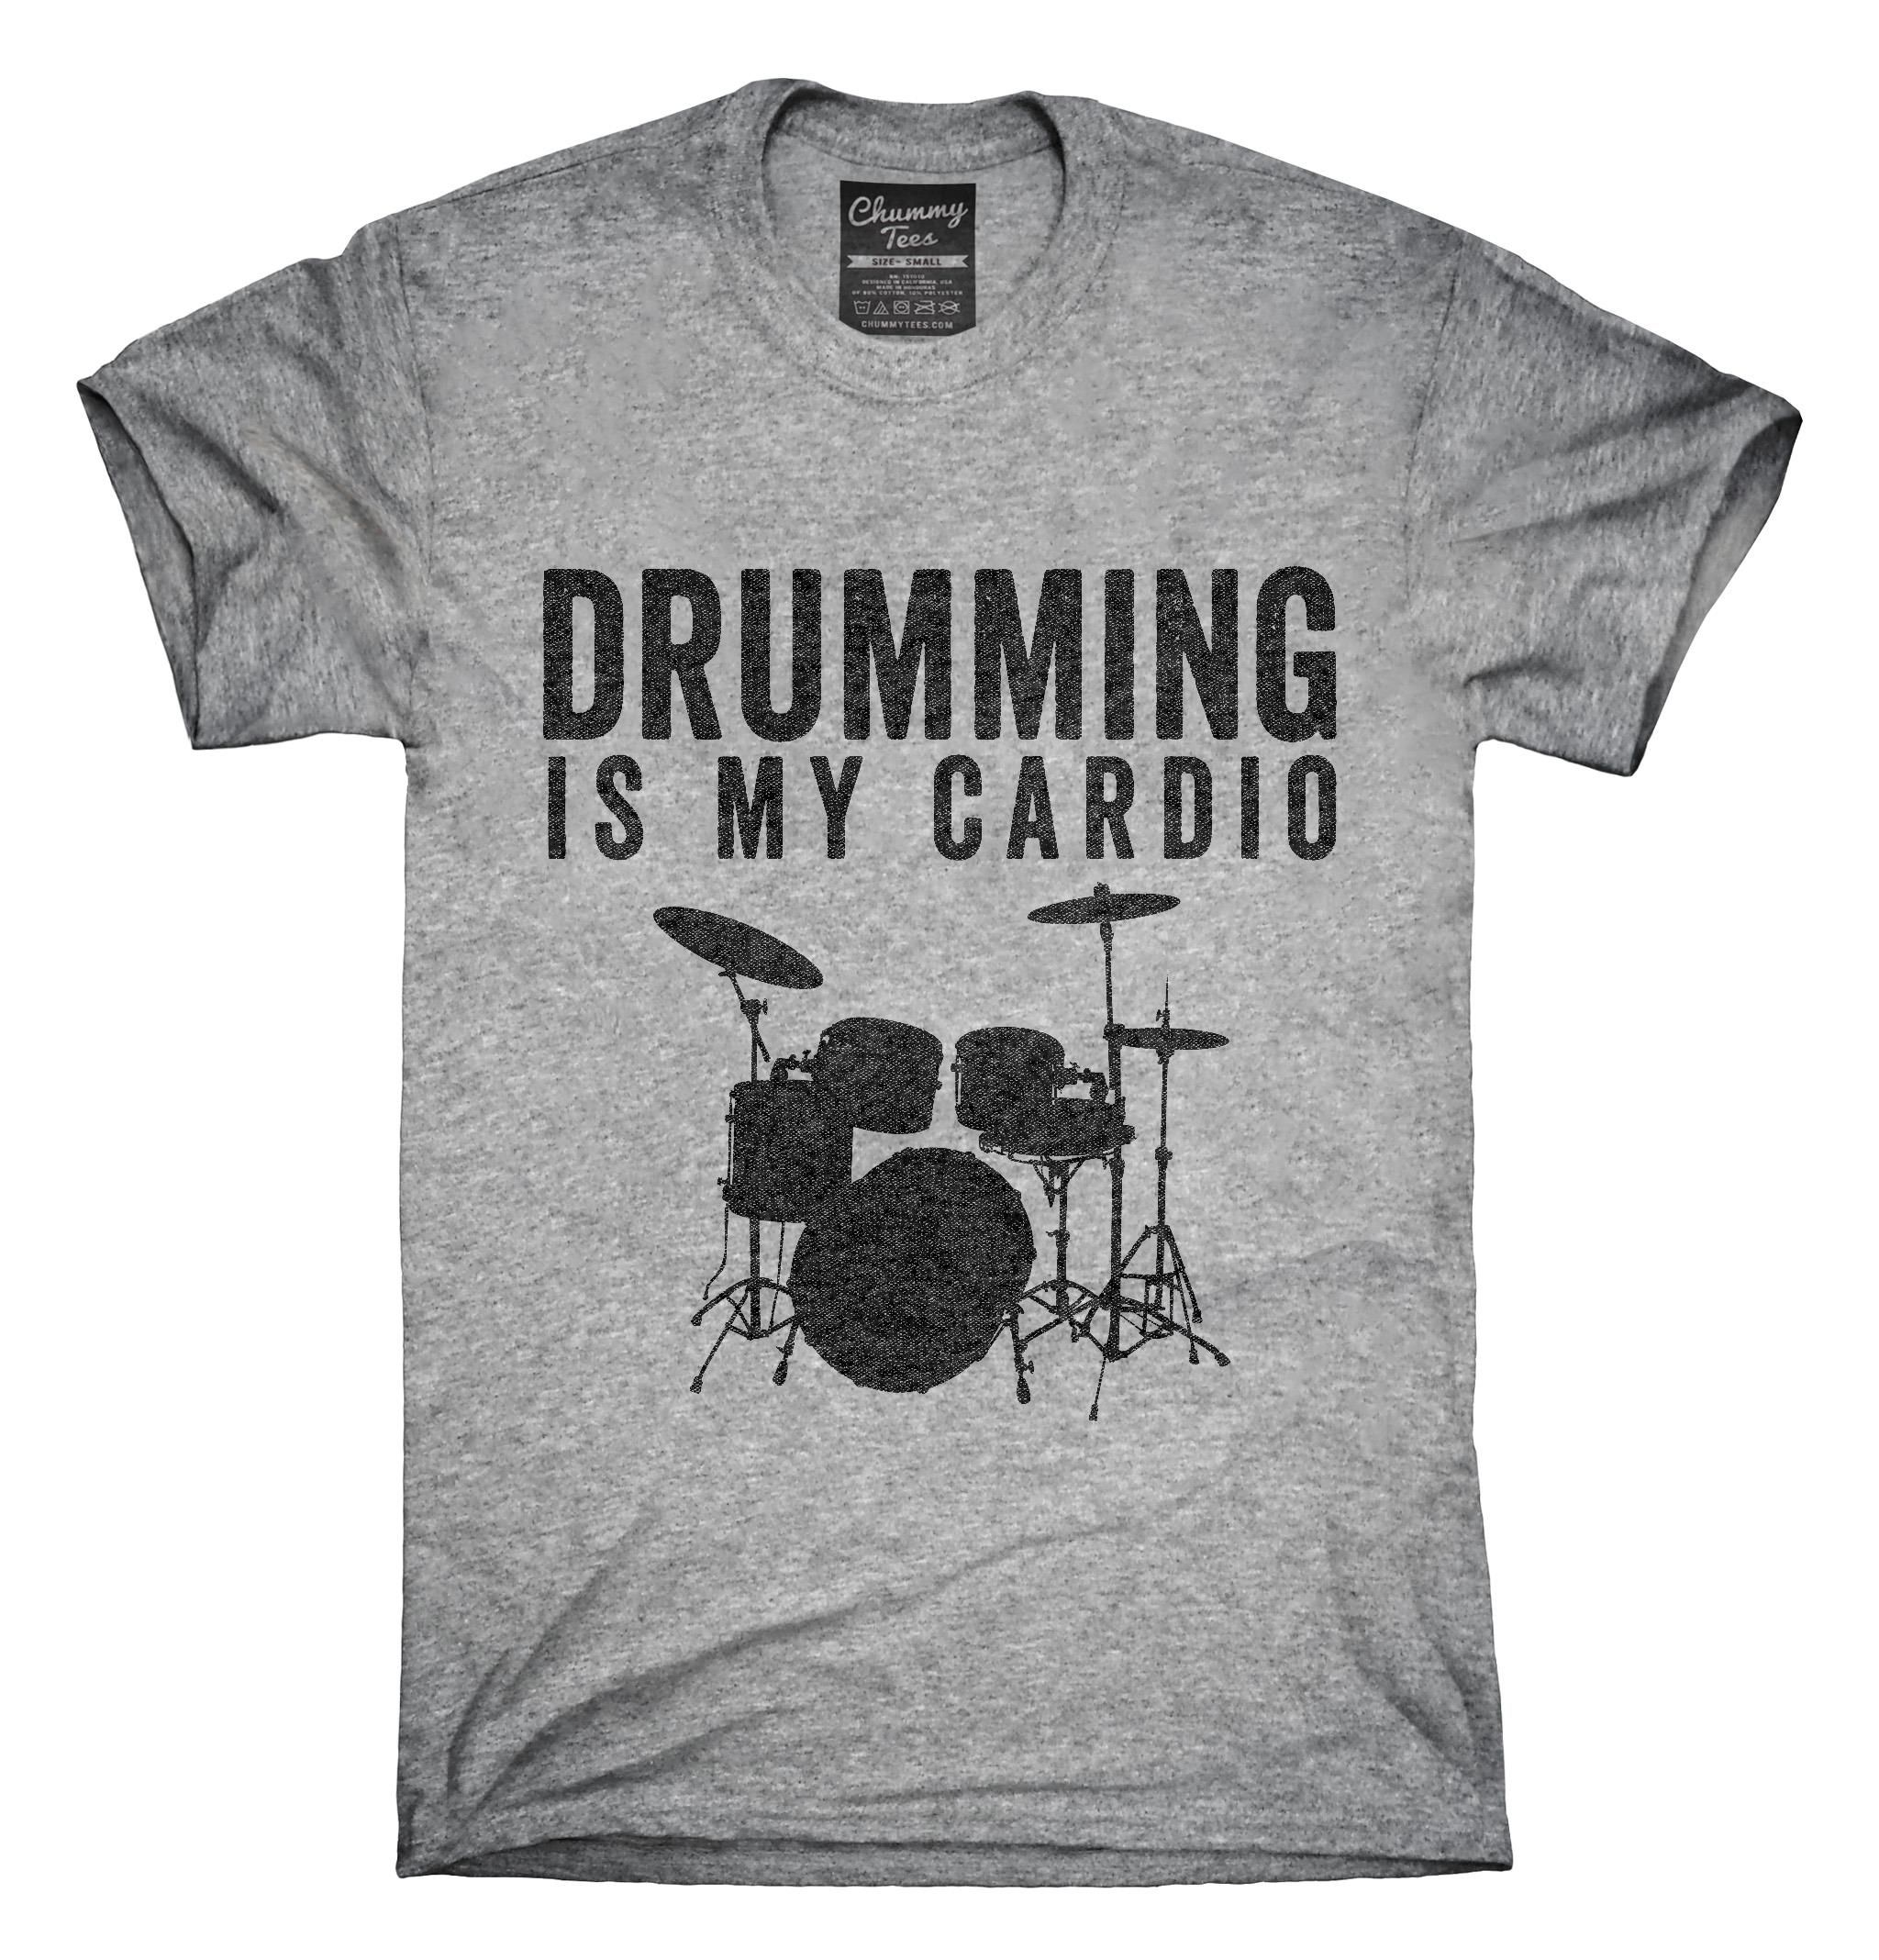 51db01e859 You can order this Drumming Is My Cardio t-shirt design on several  different sizes